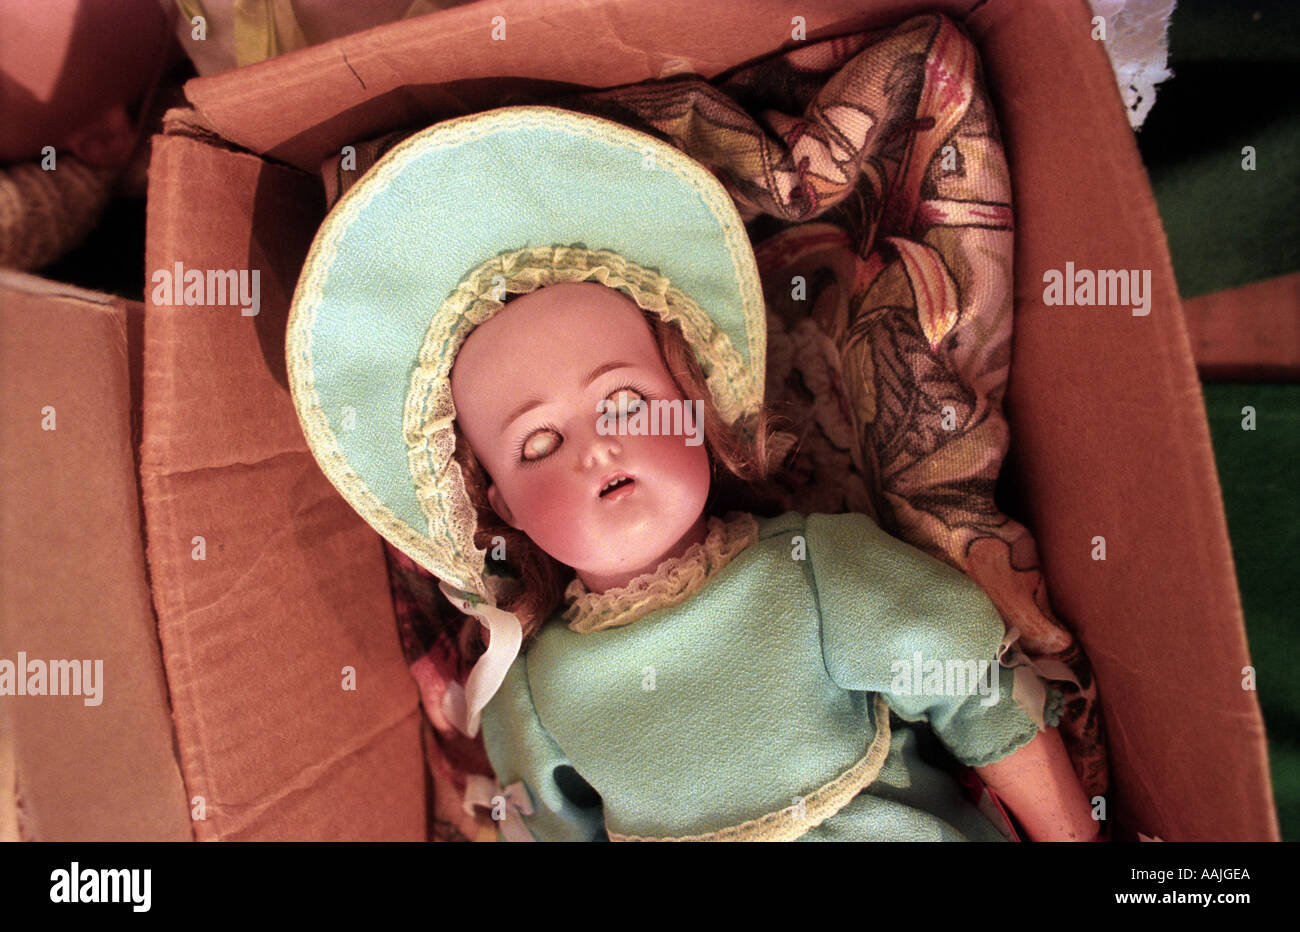 Antique doll up for auction at Sotheby s in West Sussex Picture by Andrew Hasson June 19th 1996 - Stock Image